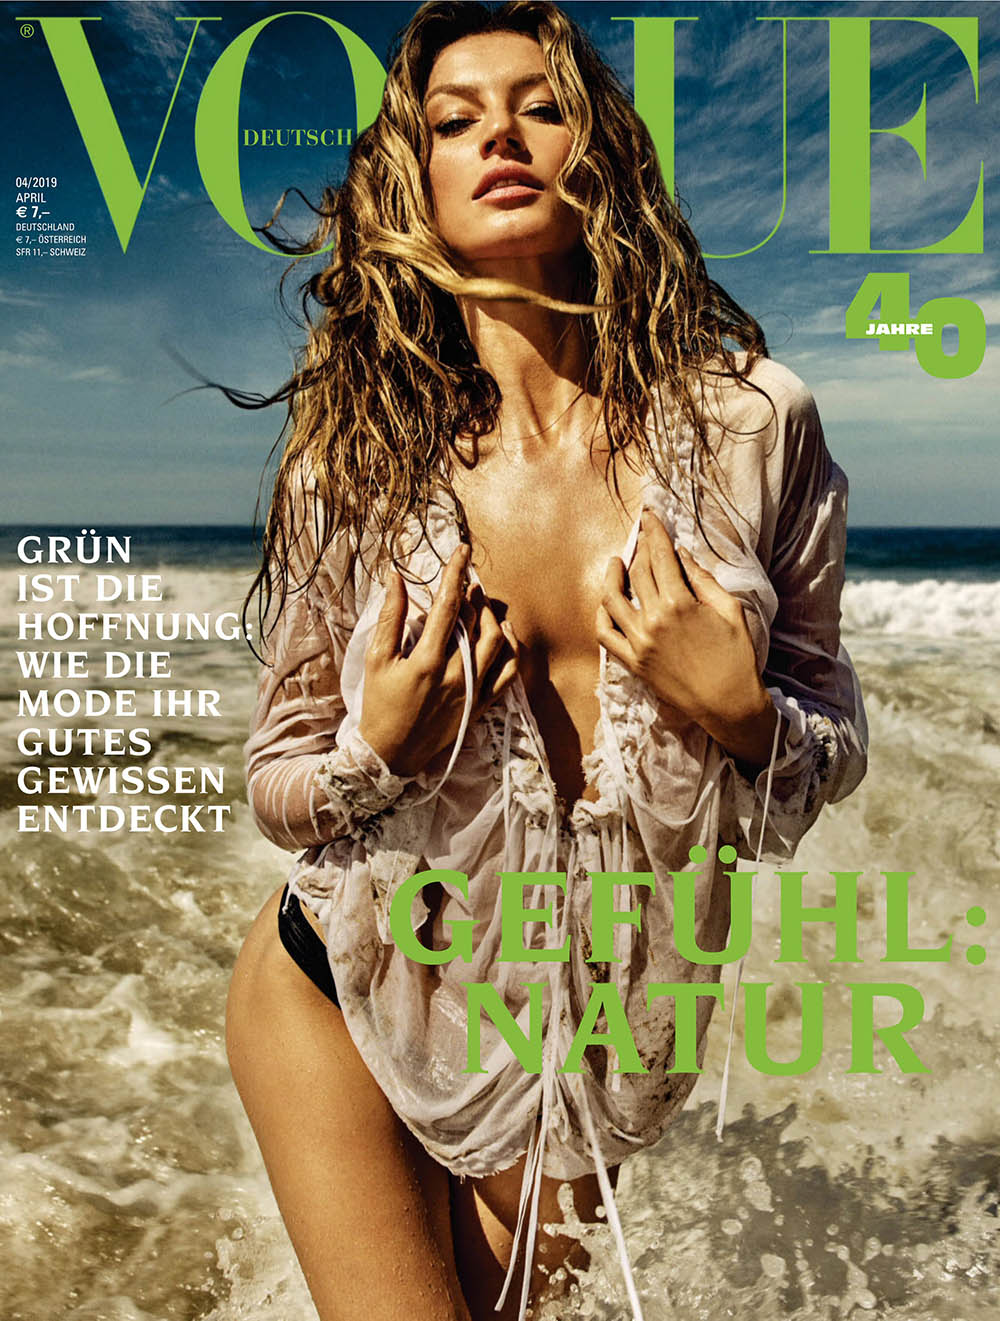 Gisele Bündchen covers Vogue Germany April 2019 by Luigi & Iango